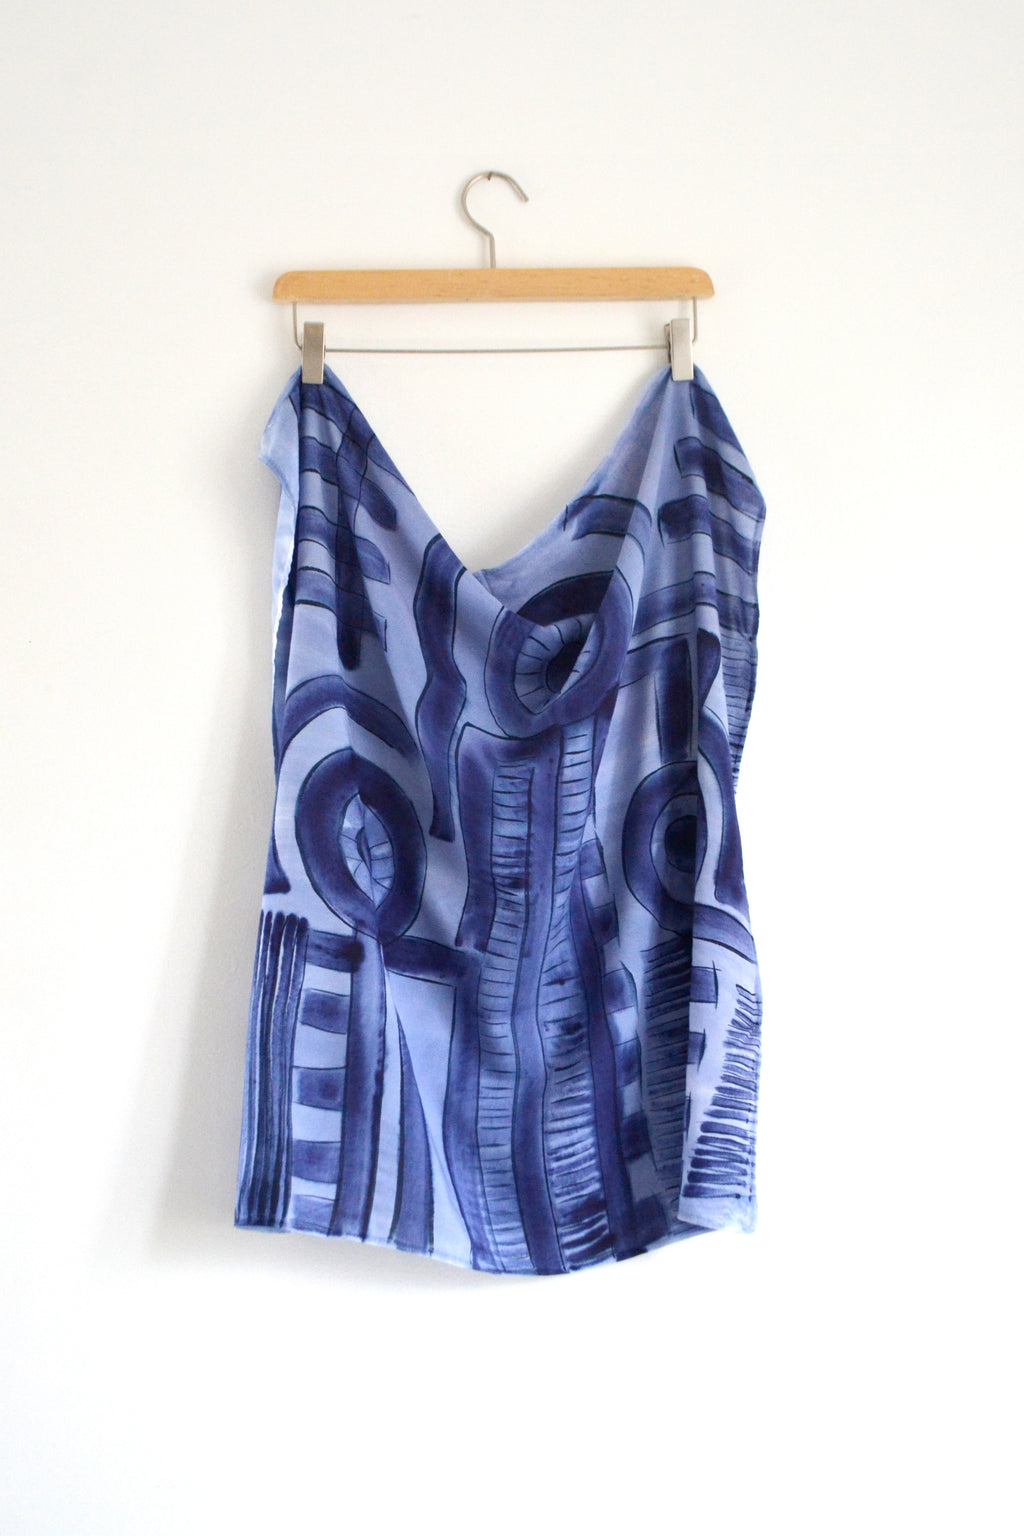 Watercolor Neck Scarf - Out of the Blue